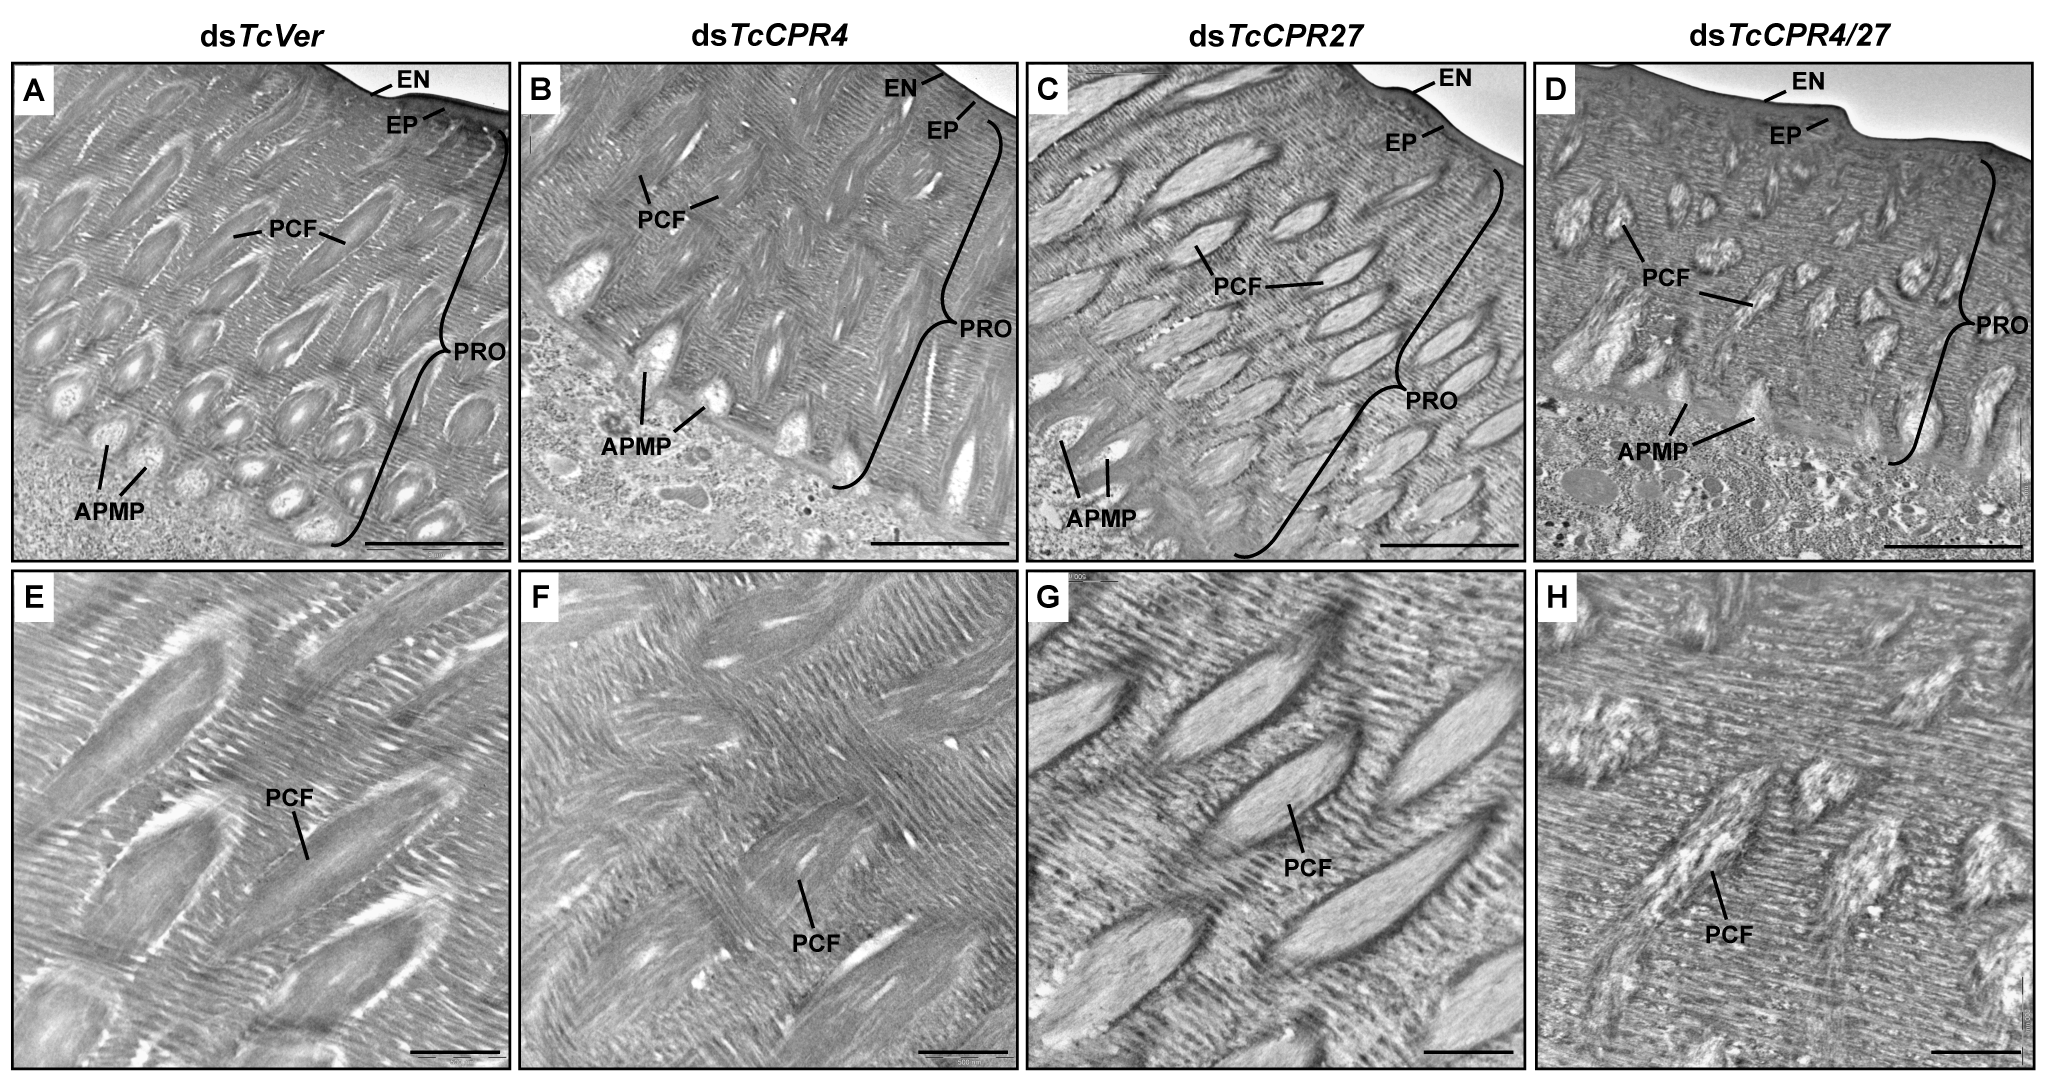 Ultrastructure of elytral cuticle of TcCPR4-, TcCPR27- and TcCPR4/27-deficient pharate adults.